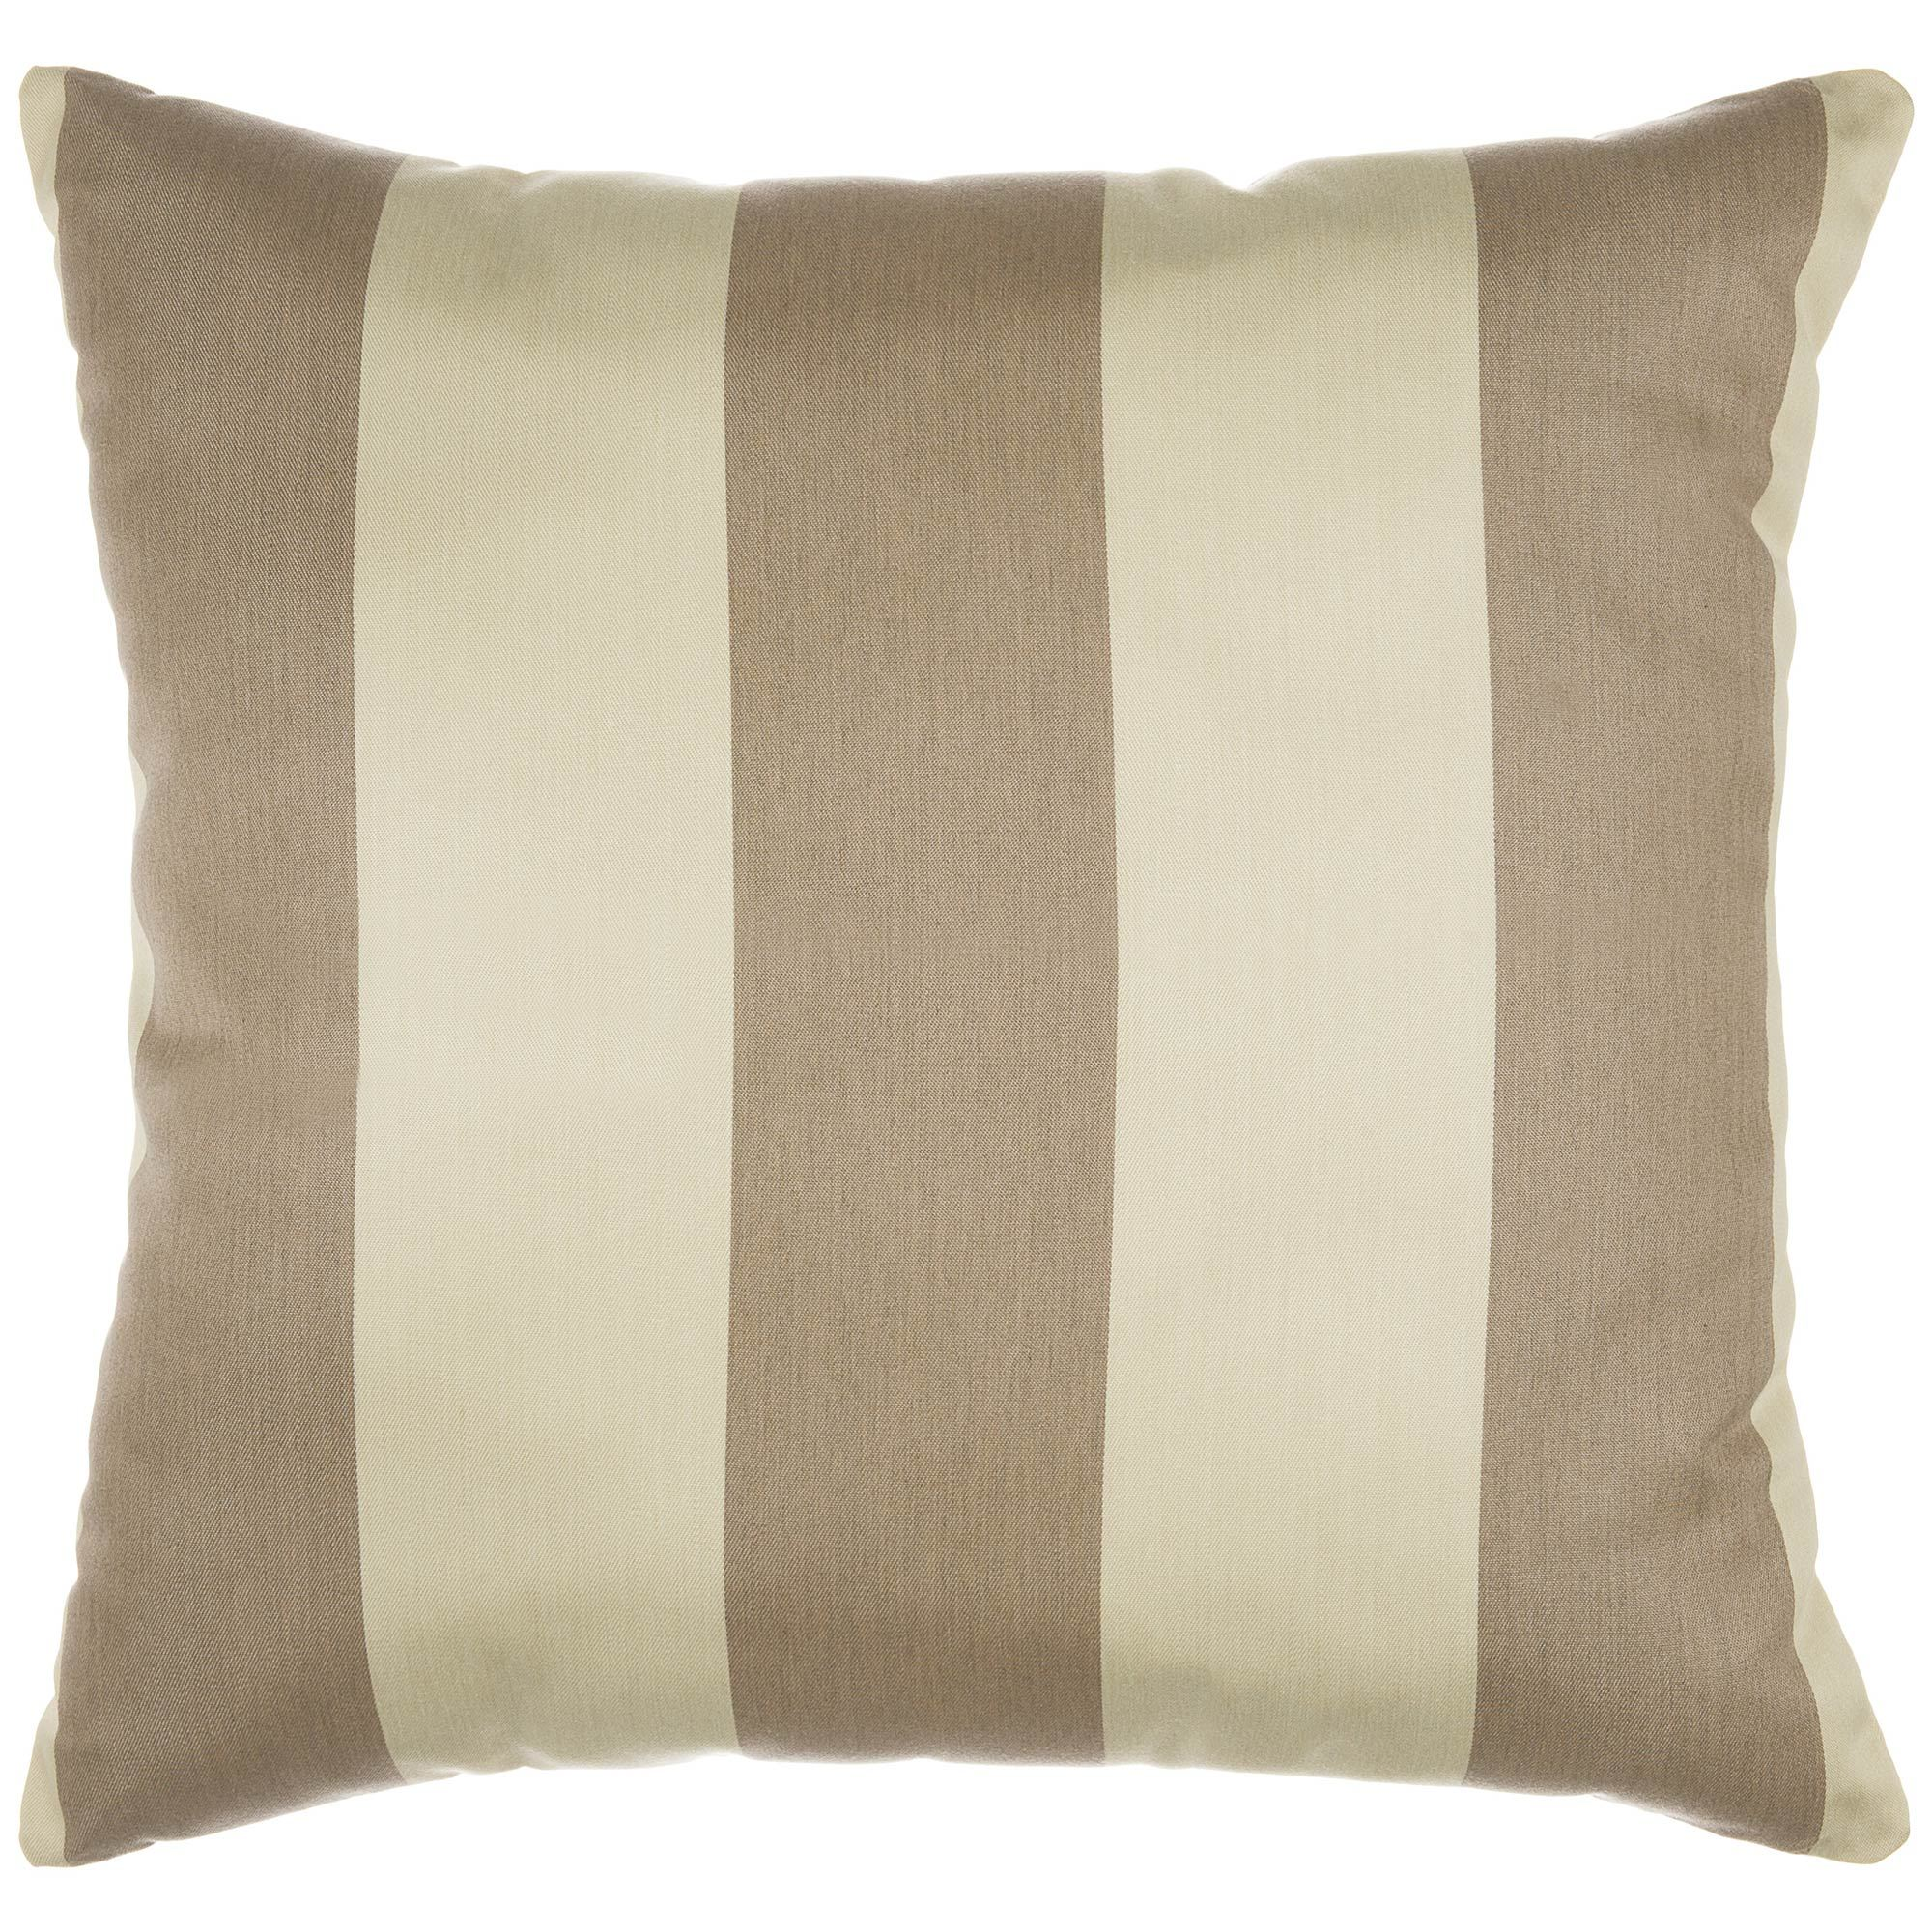 Exciting outdoor throw pillows for outdoor accessories with cheap outdoor throw pillows